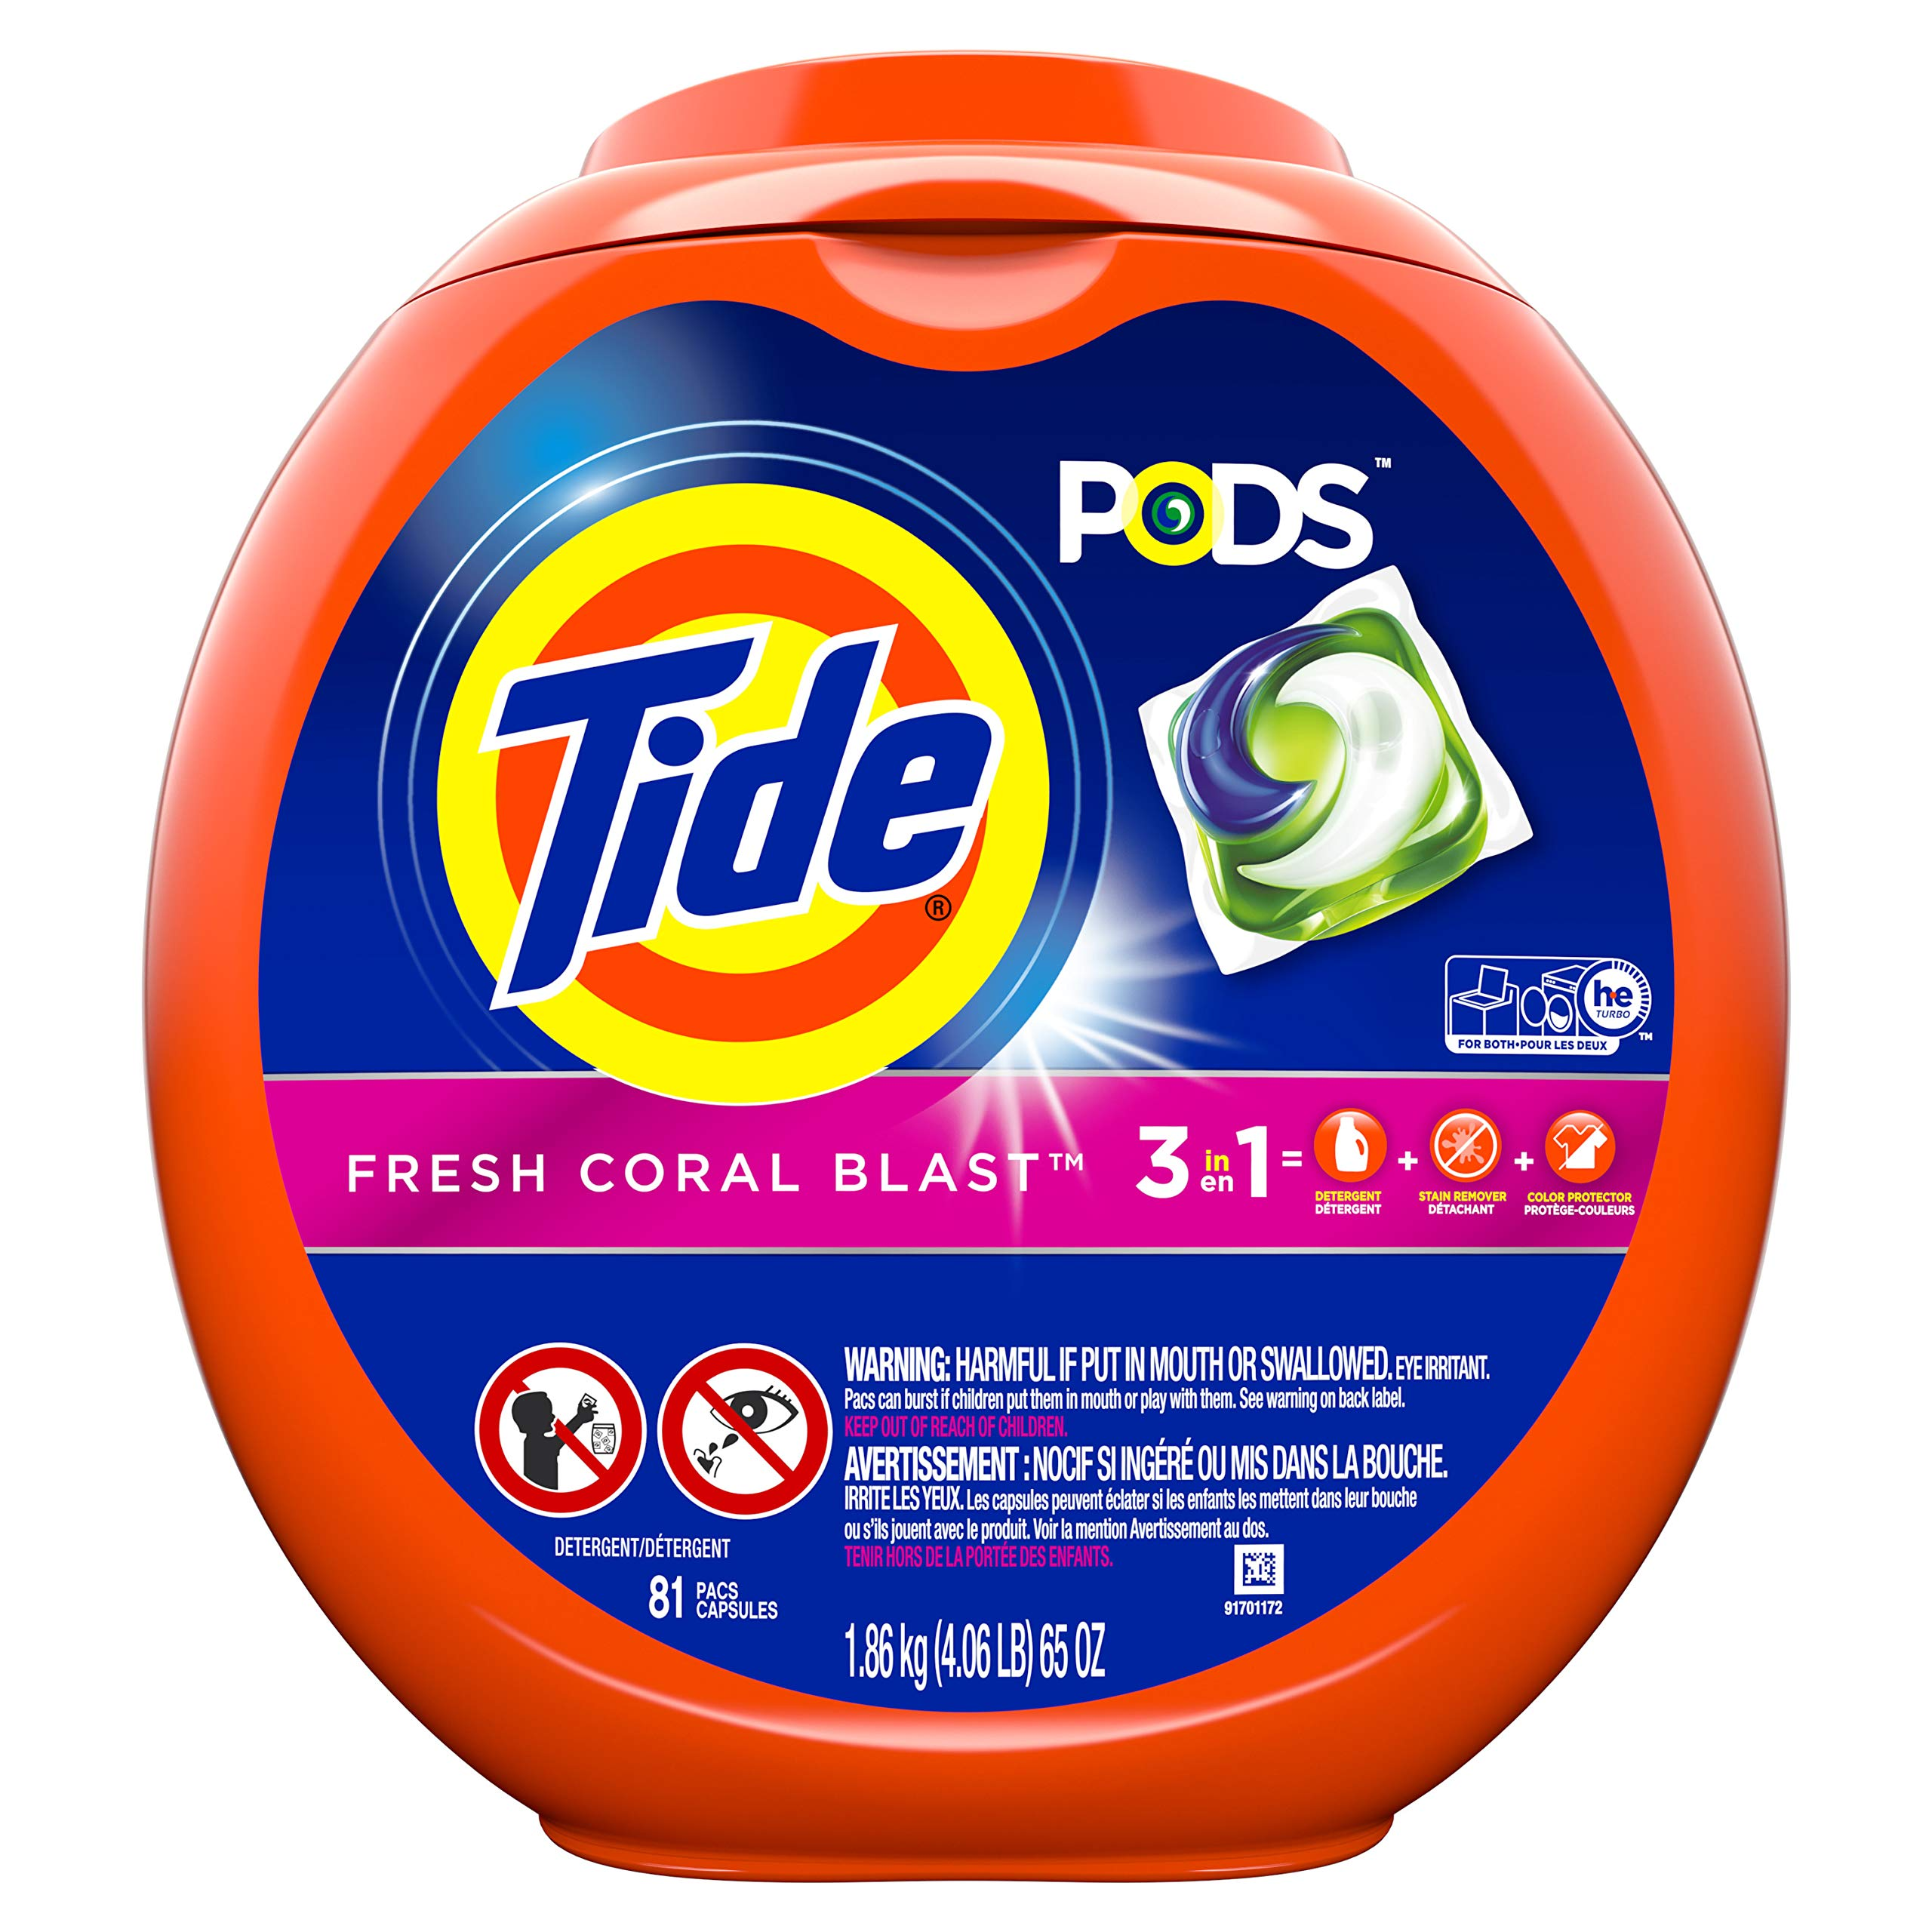 Tide PODS Laundry Detergent Liquid Pacs Tub, Fresh Coral Blast Scent, 3 in 1 HE Turbo, 81 Count by Tide